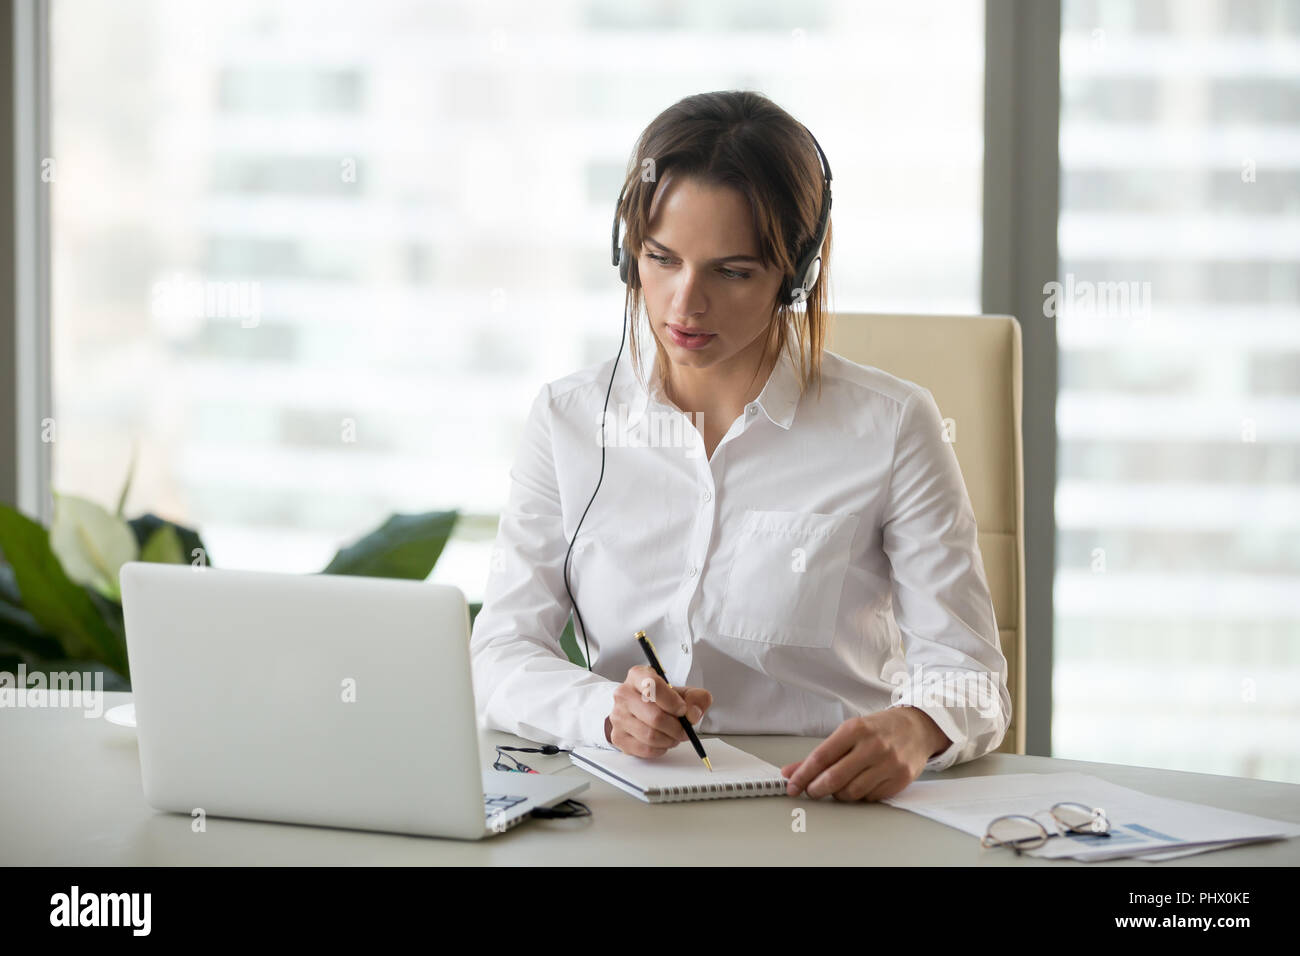 Serious businesswoman in headphones watching webinar on laptop m - Stock Image